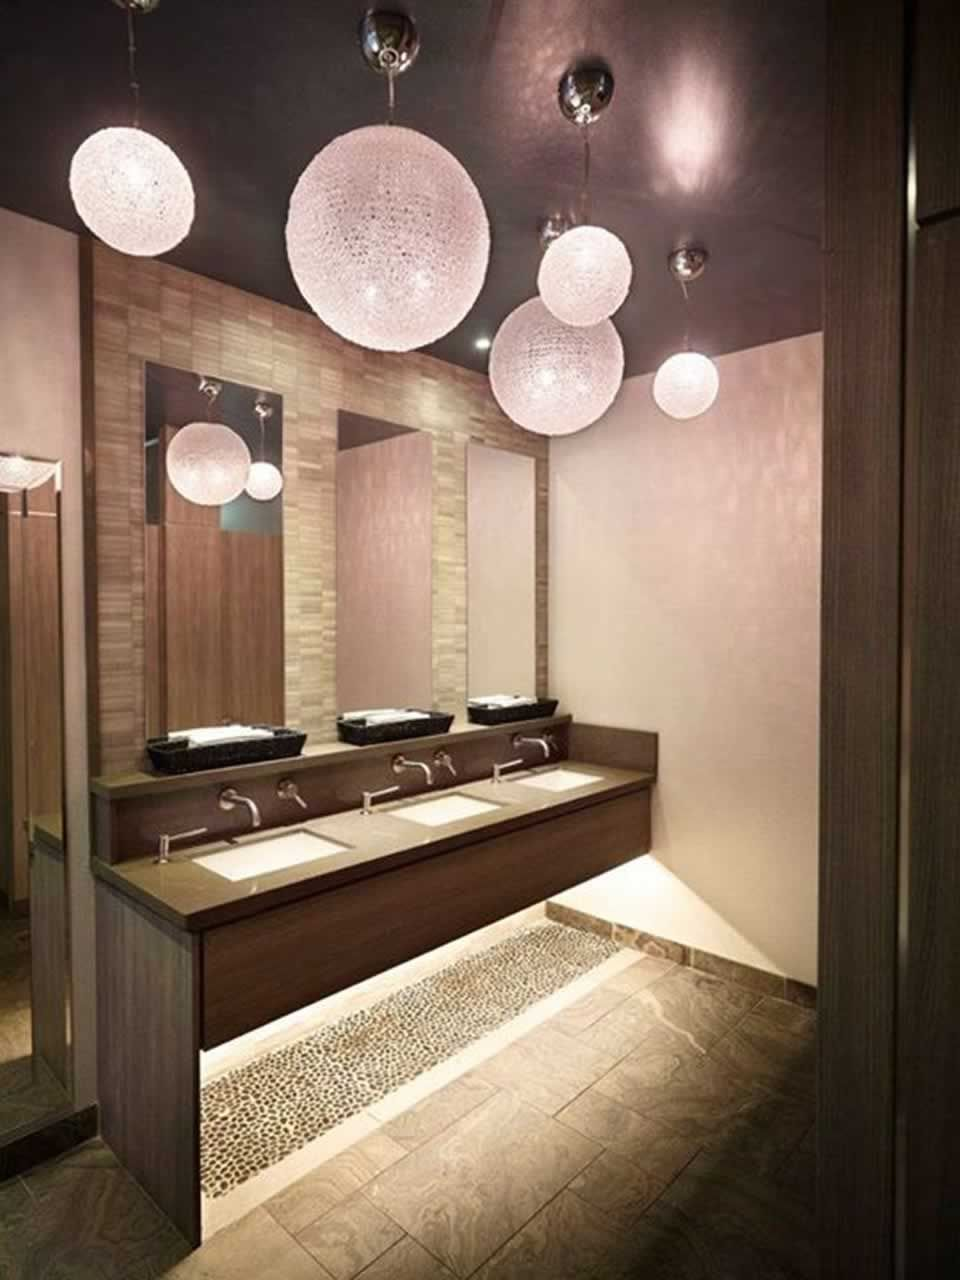 Bathroom interior design of sarcoa restaurant hamilton